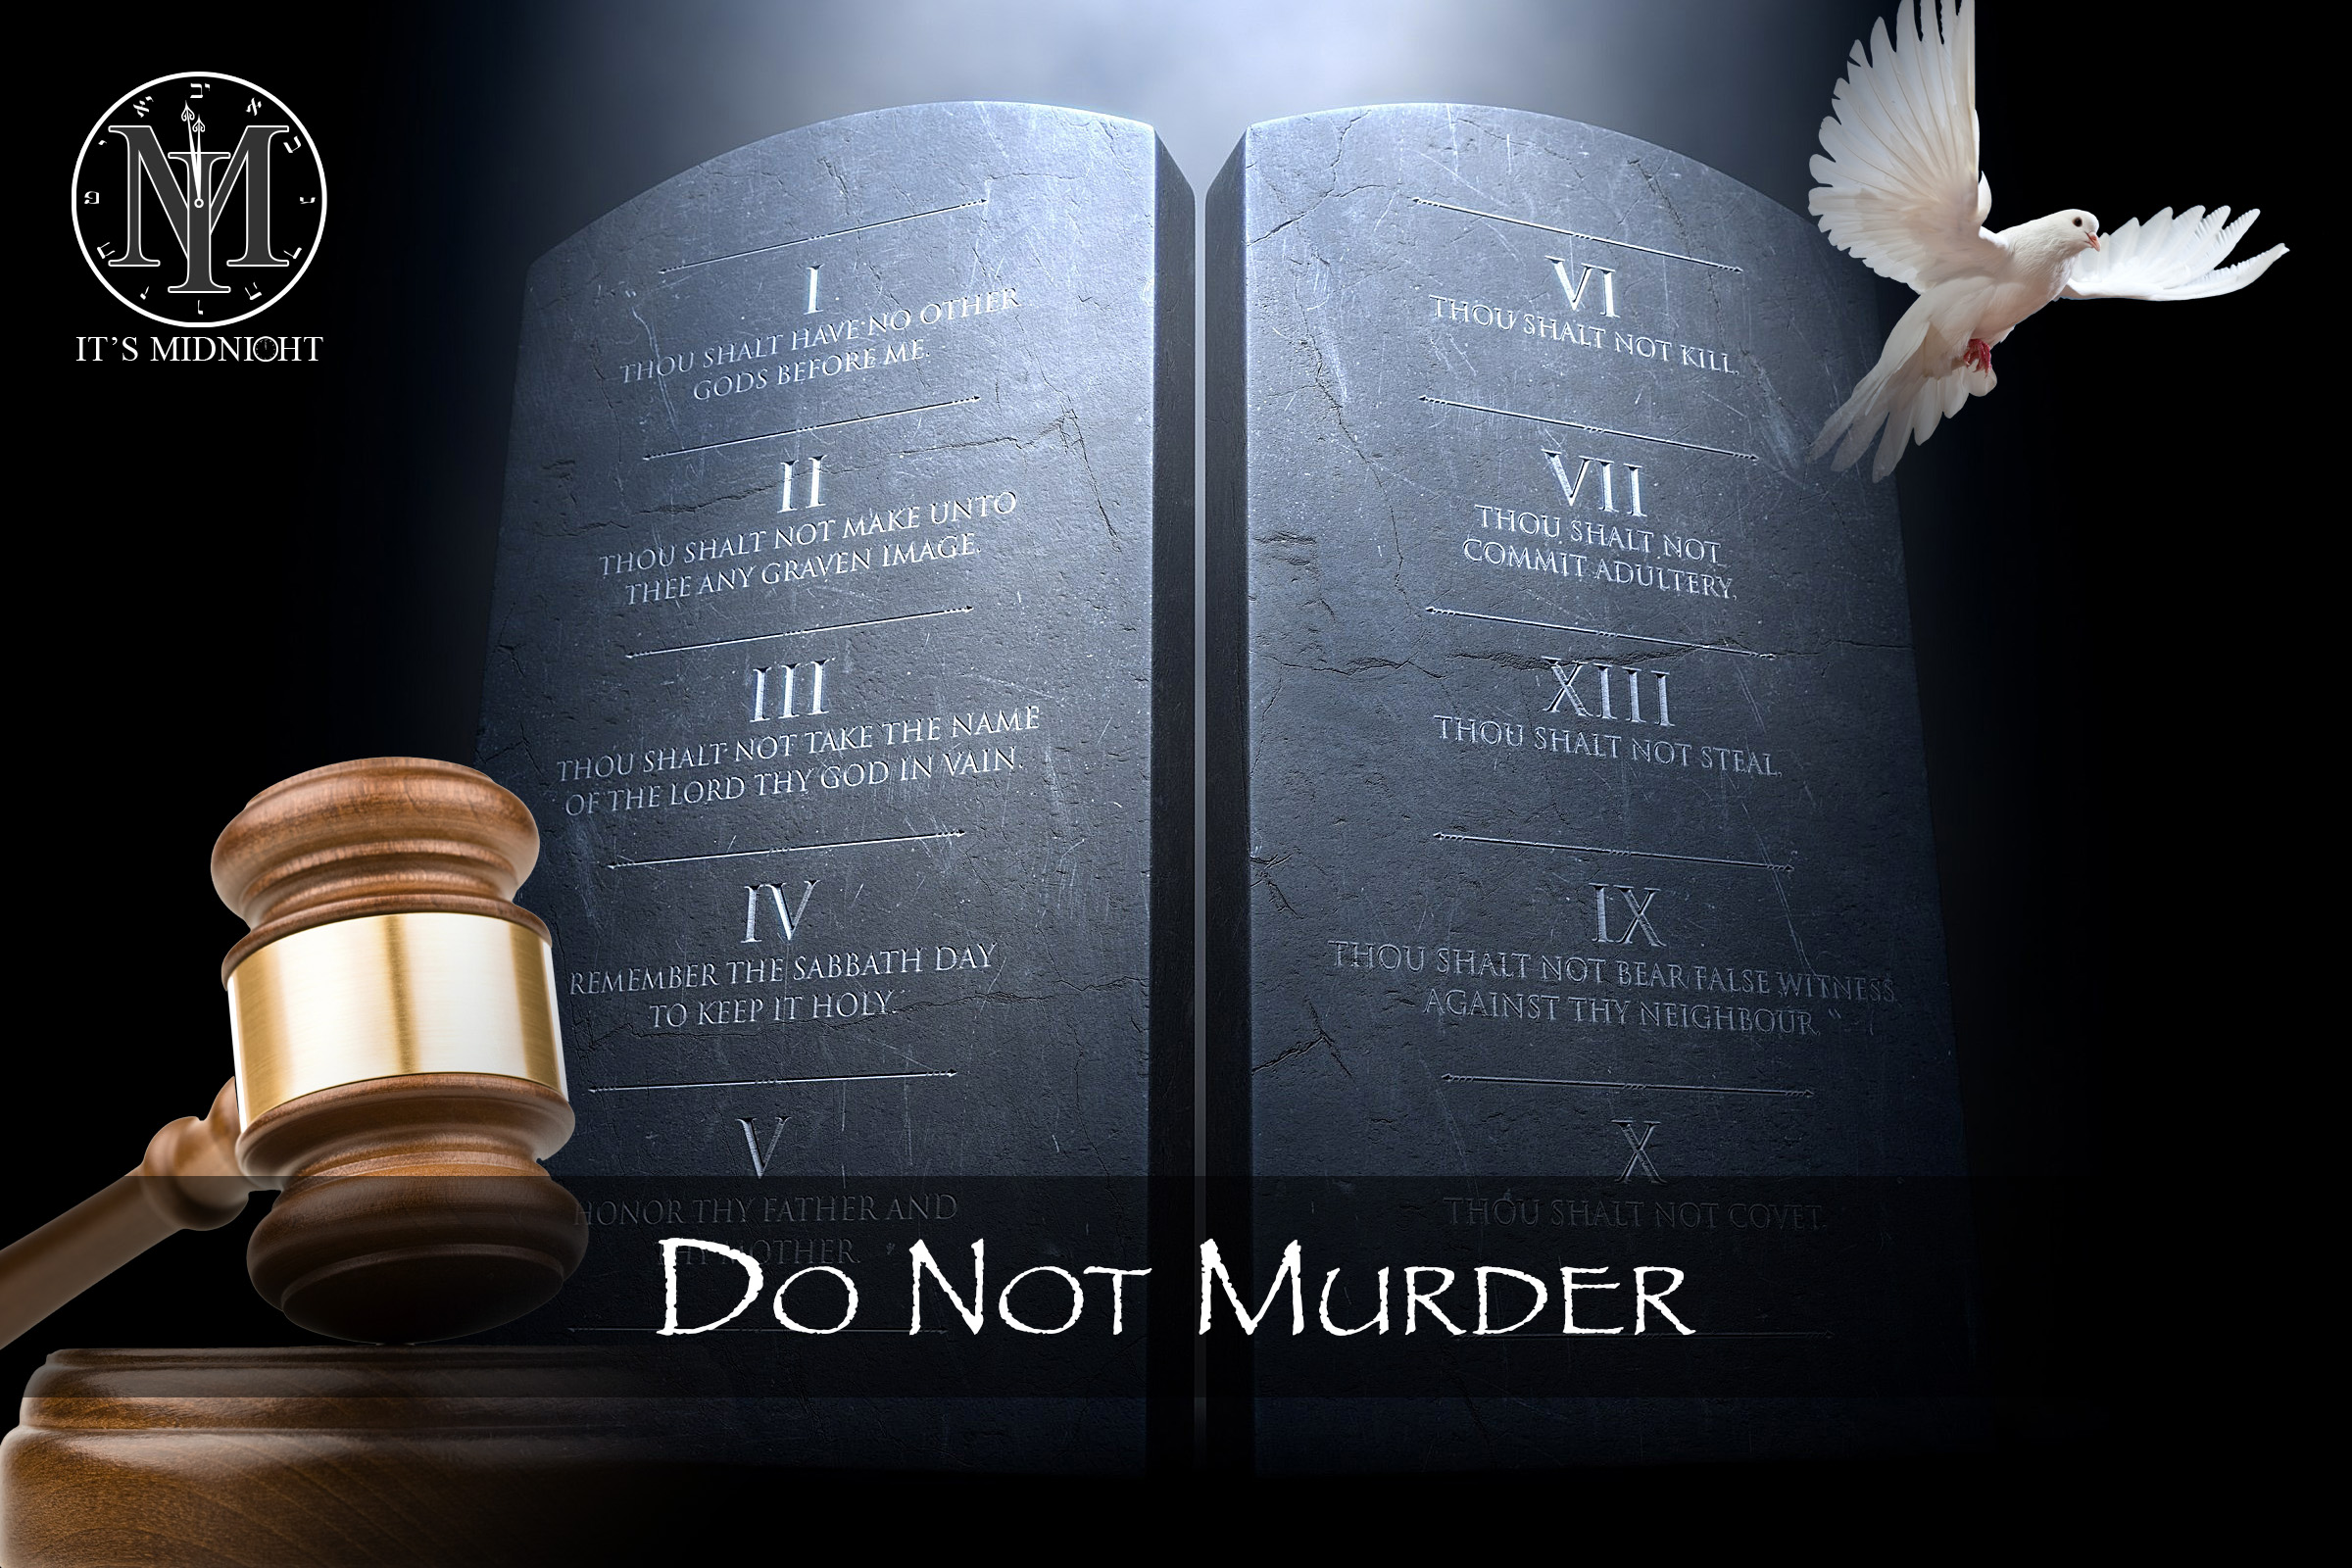 6th Commandment: Do Not Murder